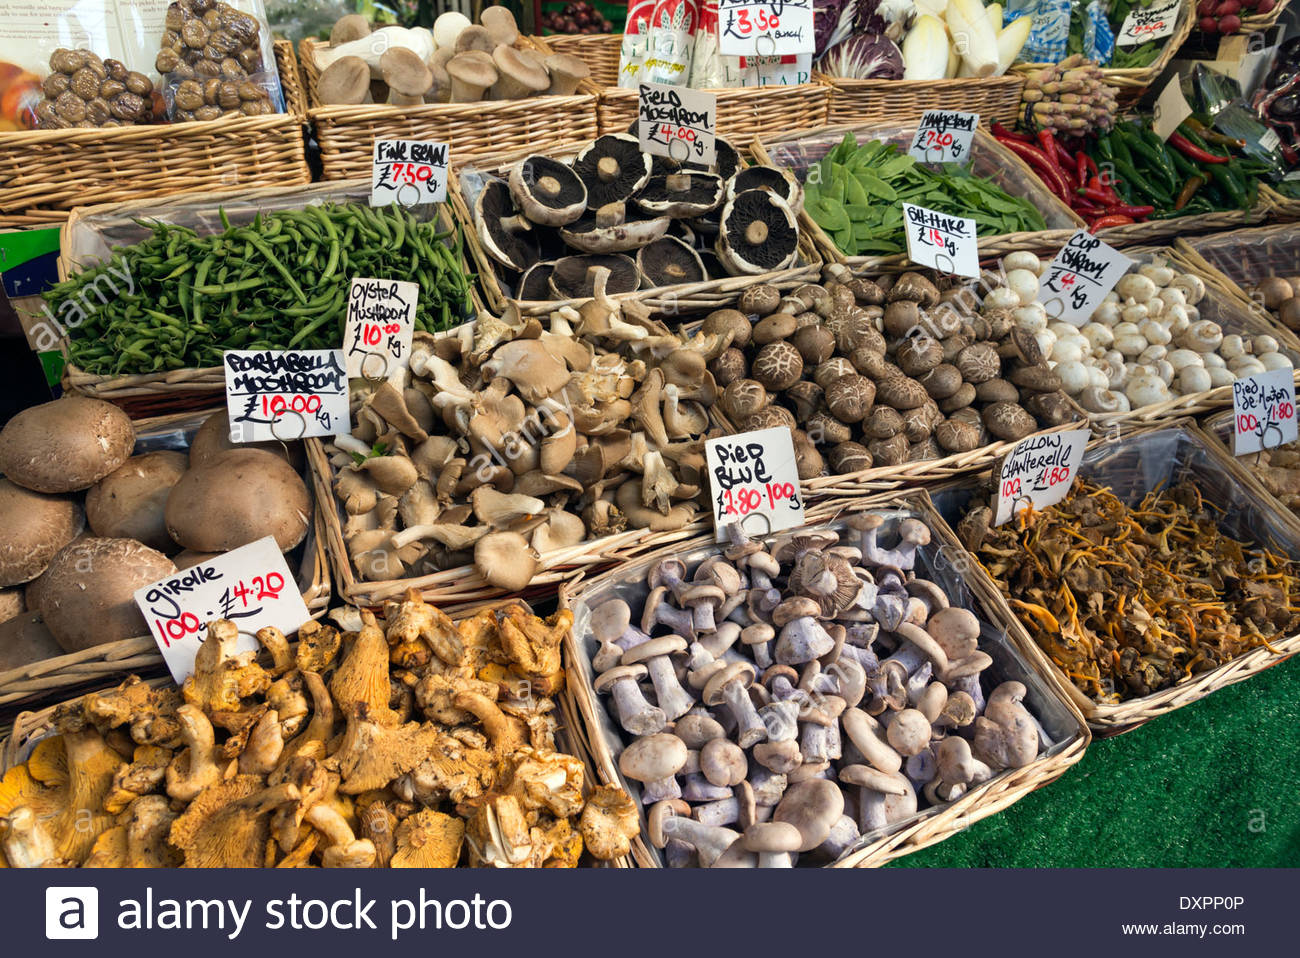 Varieties of mushrooms on a stall in Borough Market, London, England, UK - Stock Image